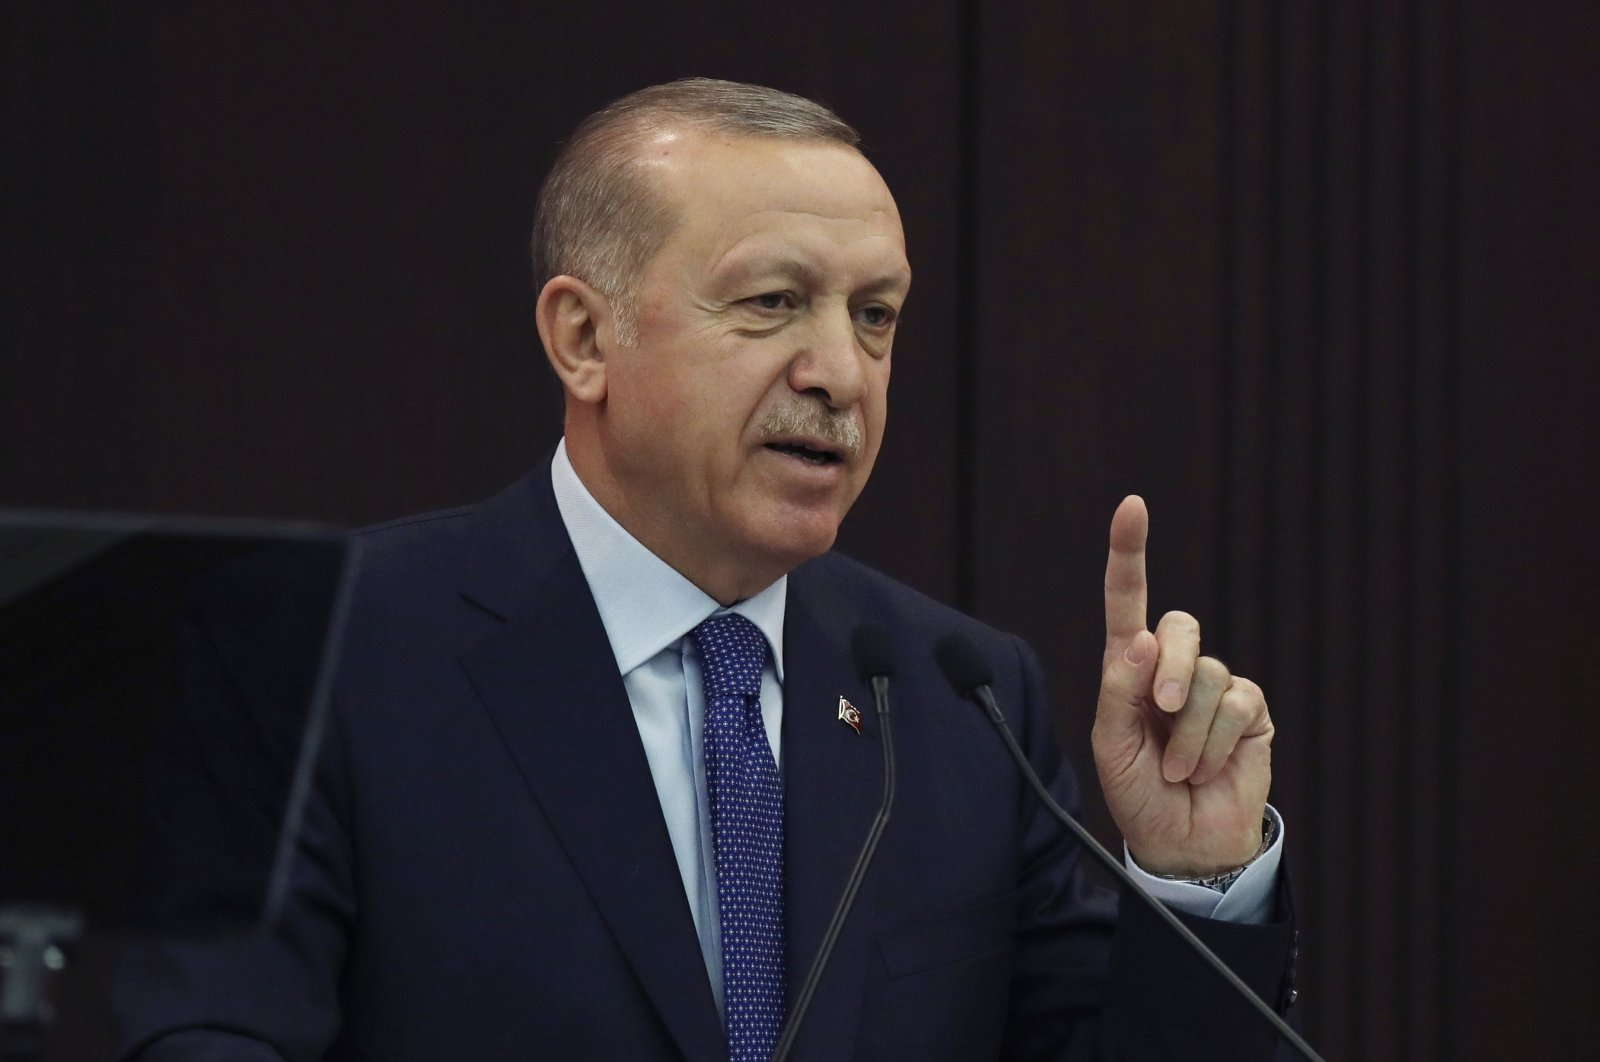 President Recep Tayyip Erdoğan speaks after a meeting with ministers, in the capital Ankara, Turkey, March 18, 2020. (AP Photo)